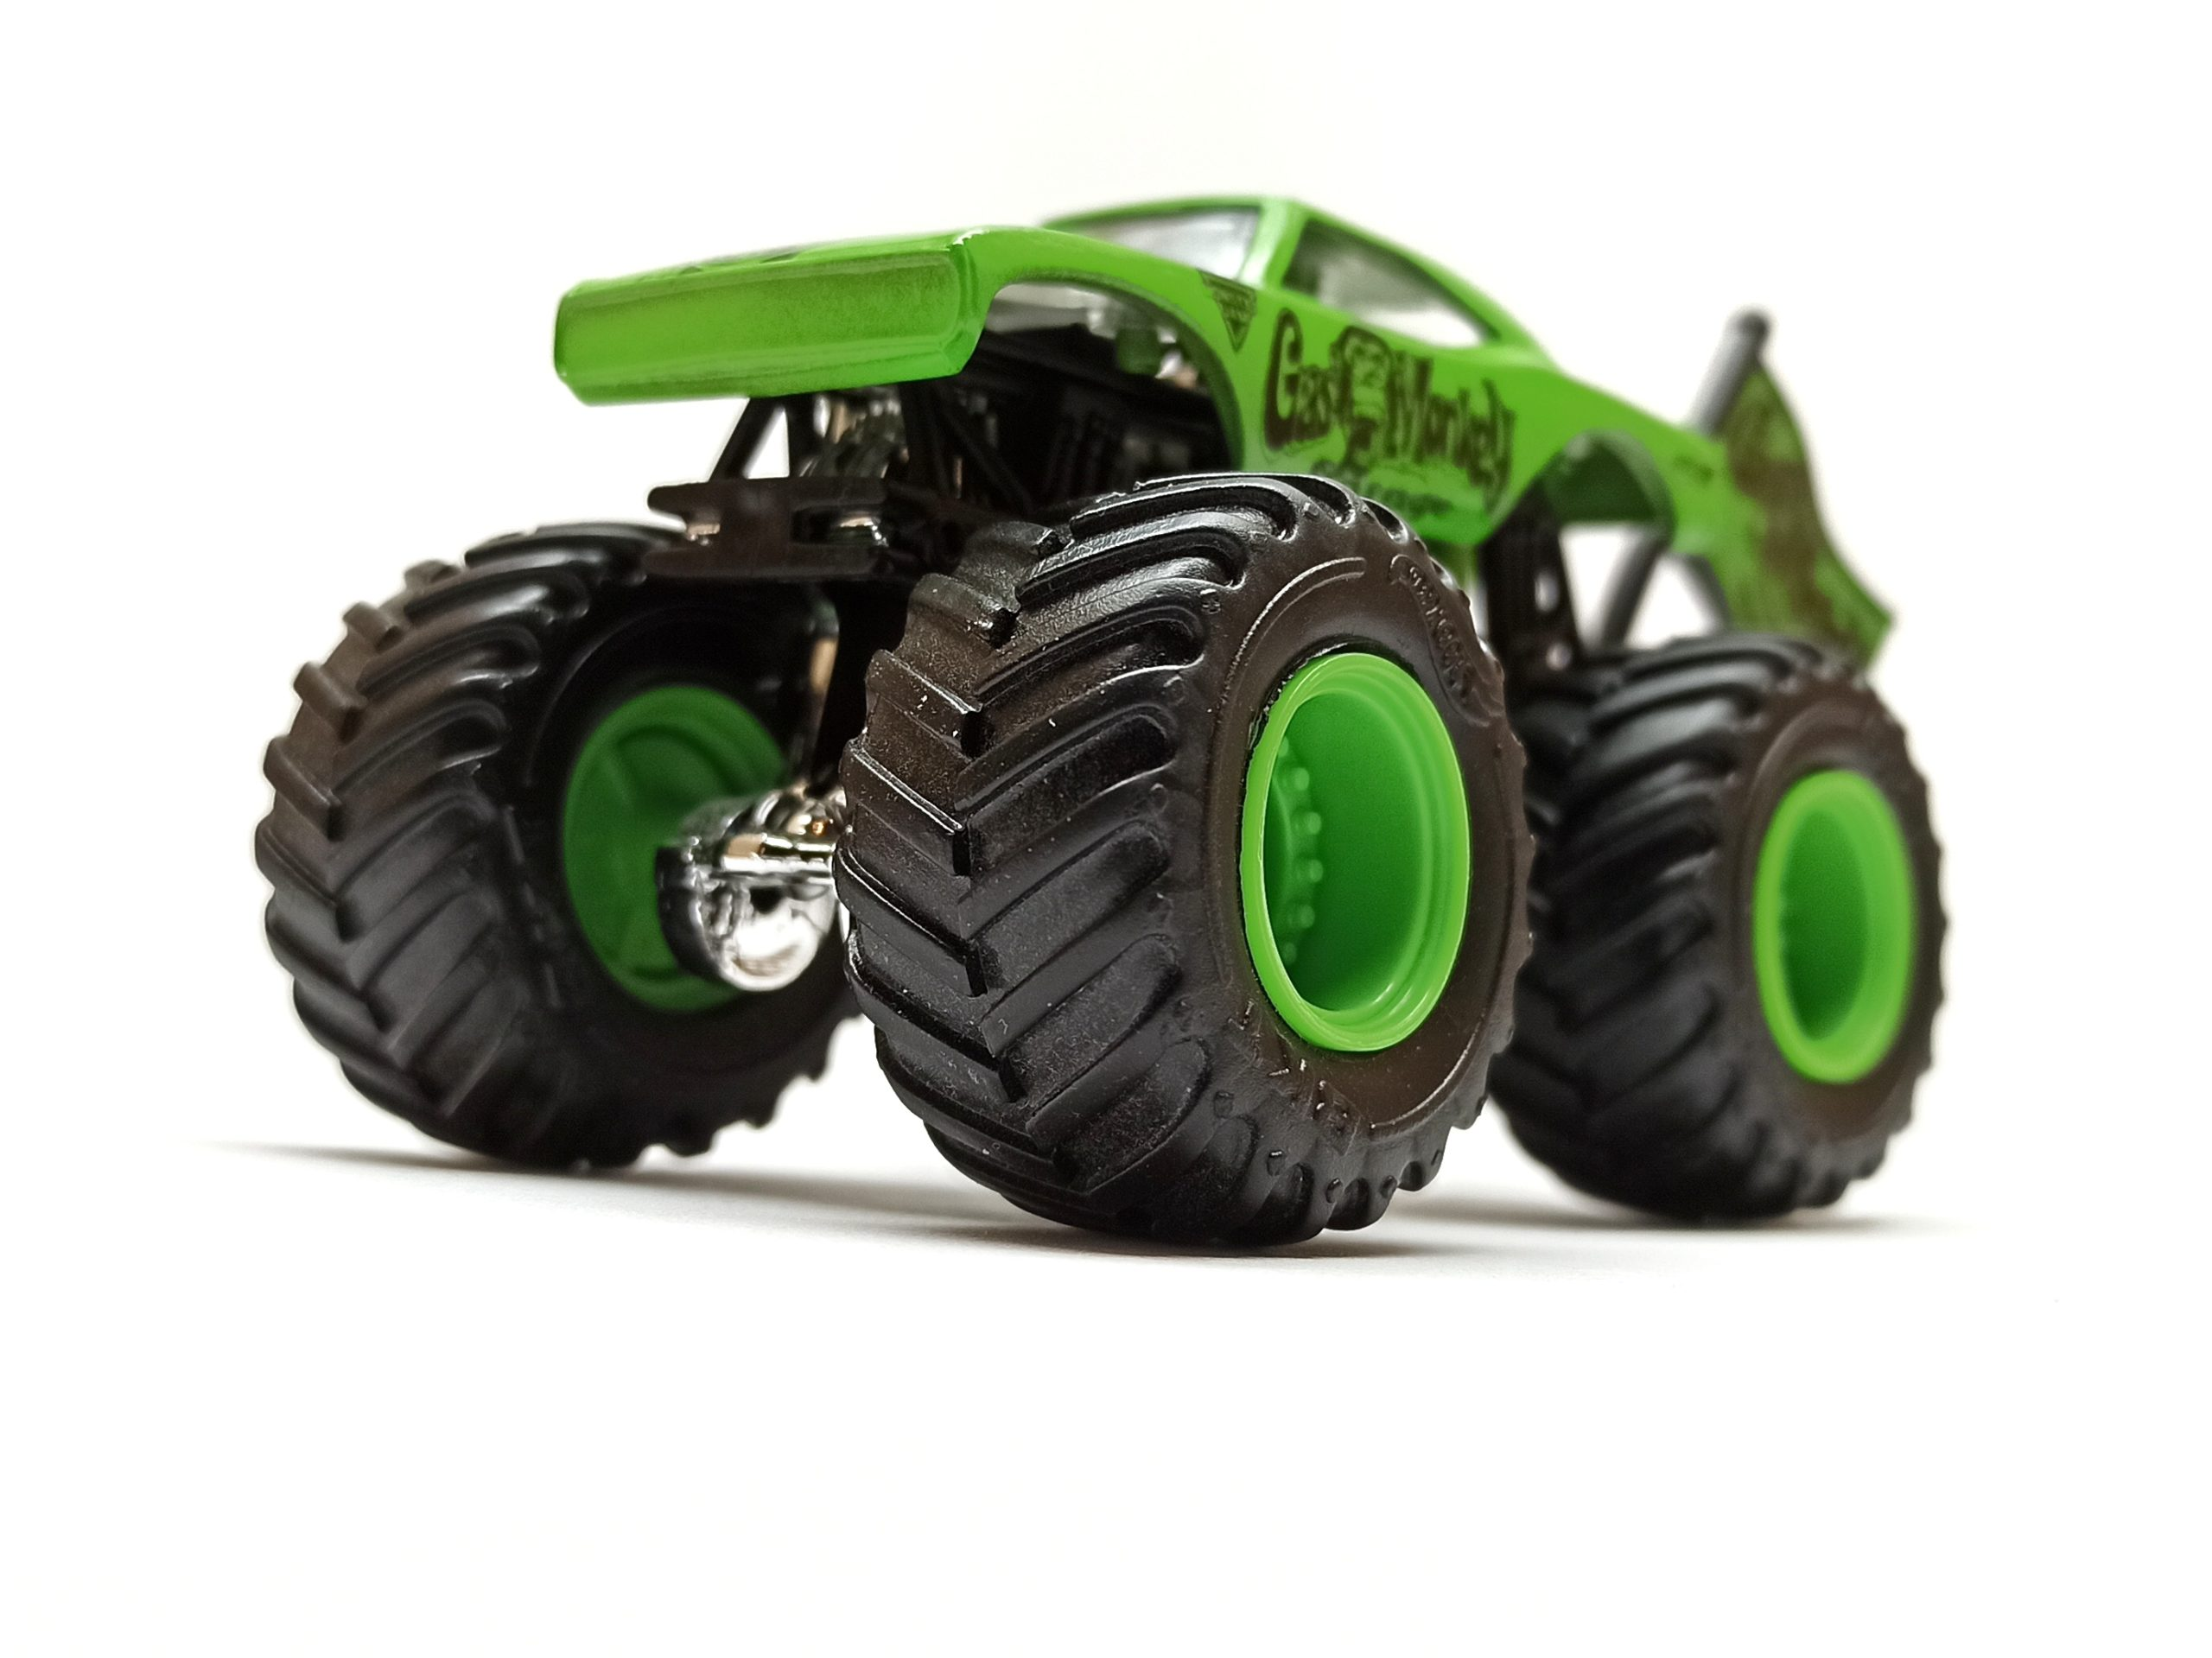 Hot Wheels Monster Jam Gas Monkey Garage 2017 Epic Editions (1/10) green side angle